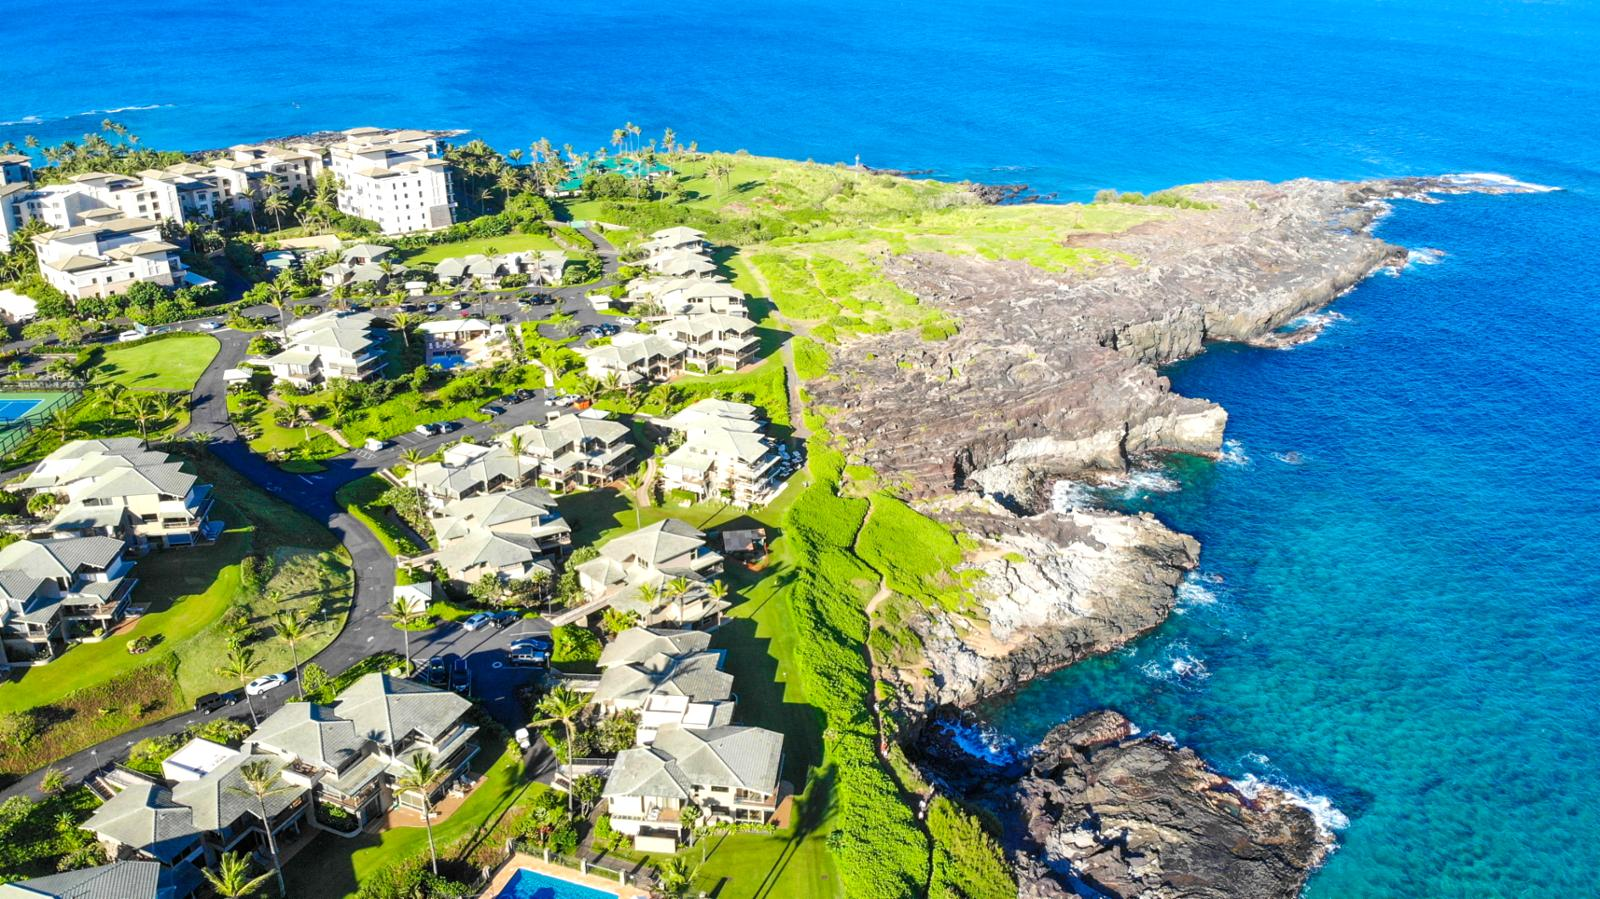 The Kapalua Coastal Trail wraps direct to Kapalua Bay